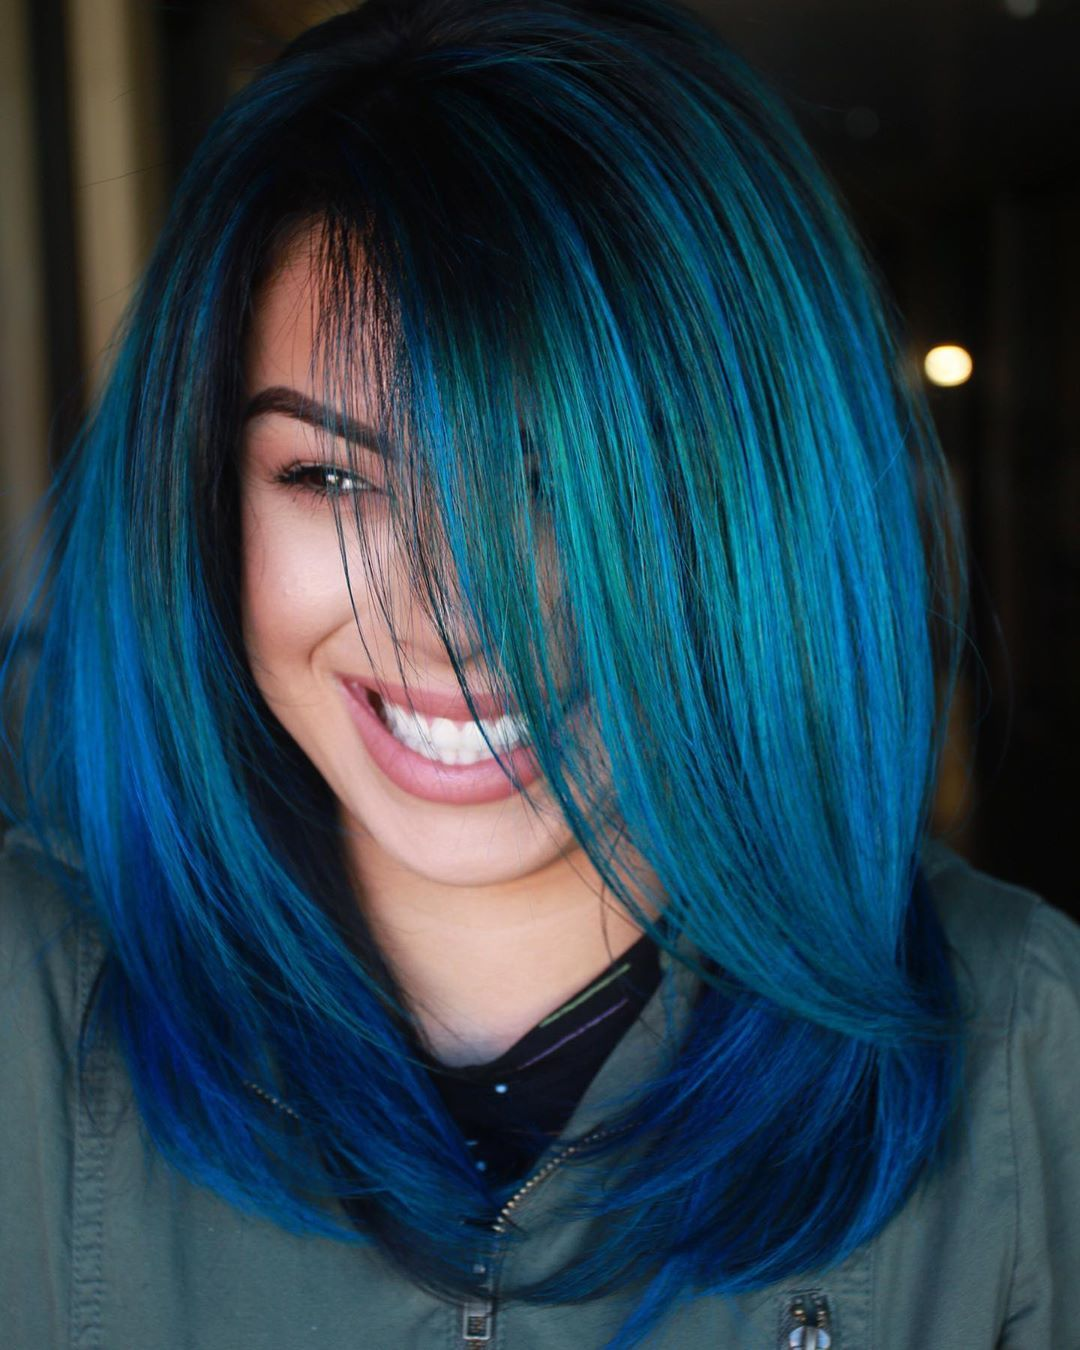 27 Latest Hairstyle Trends For Women In 2020 Pouted Com In 2020 Hair Styles Long Hair Styles Short Thin Hair